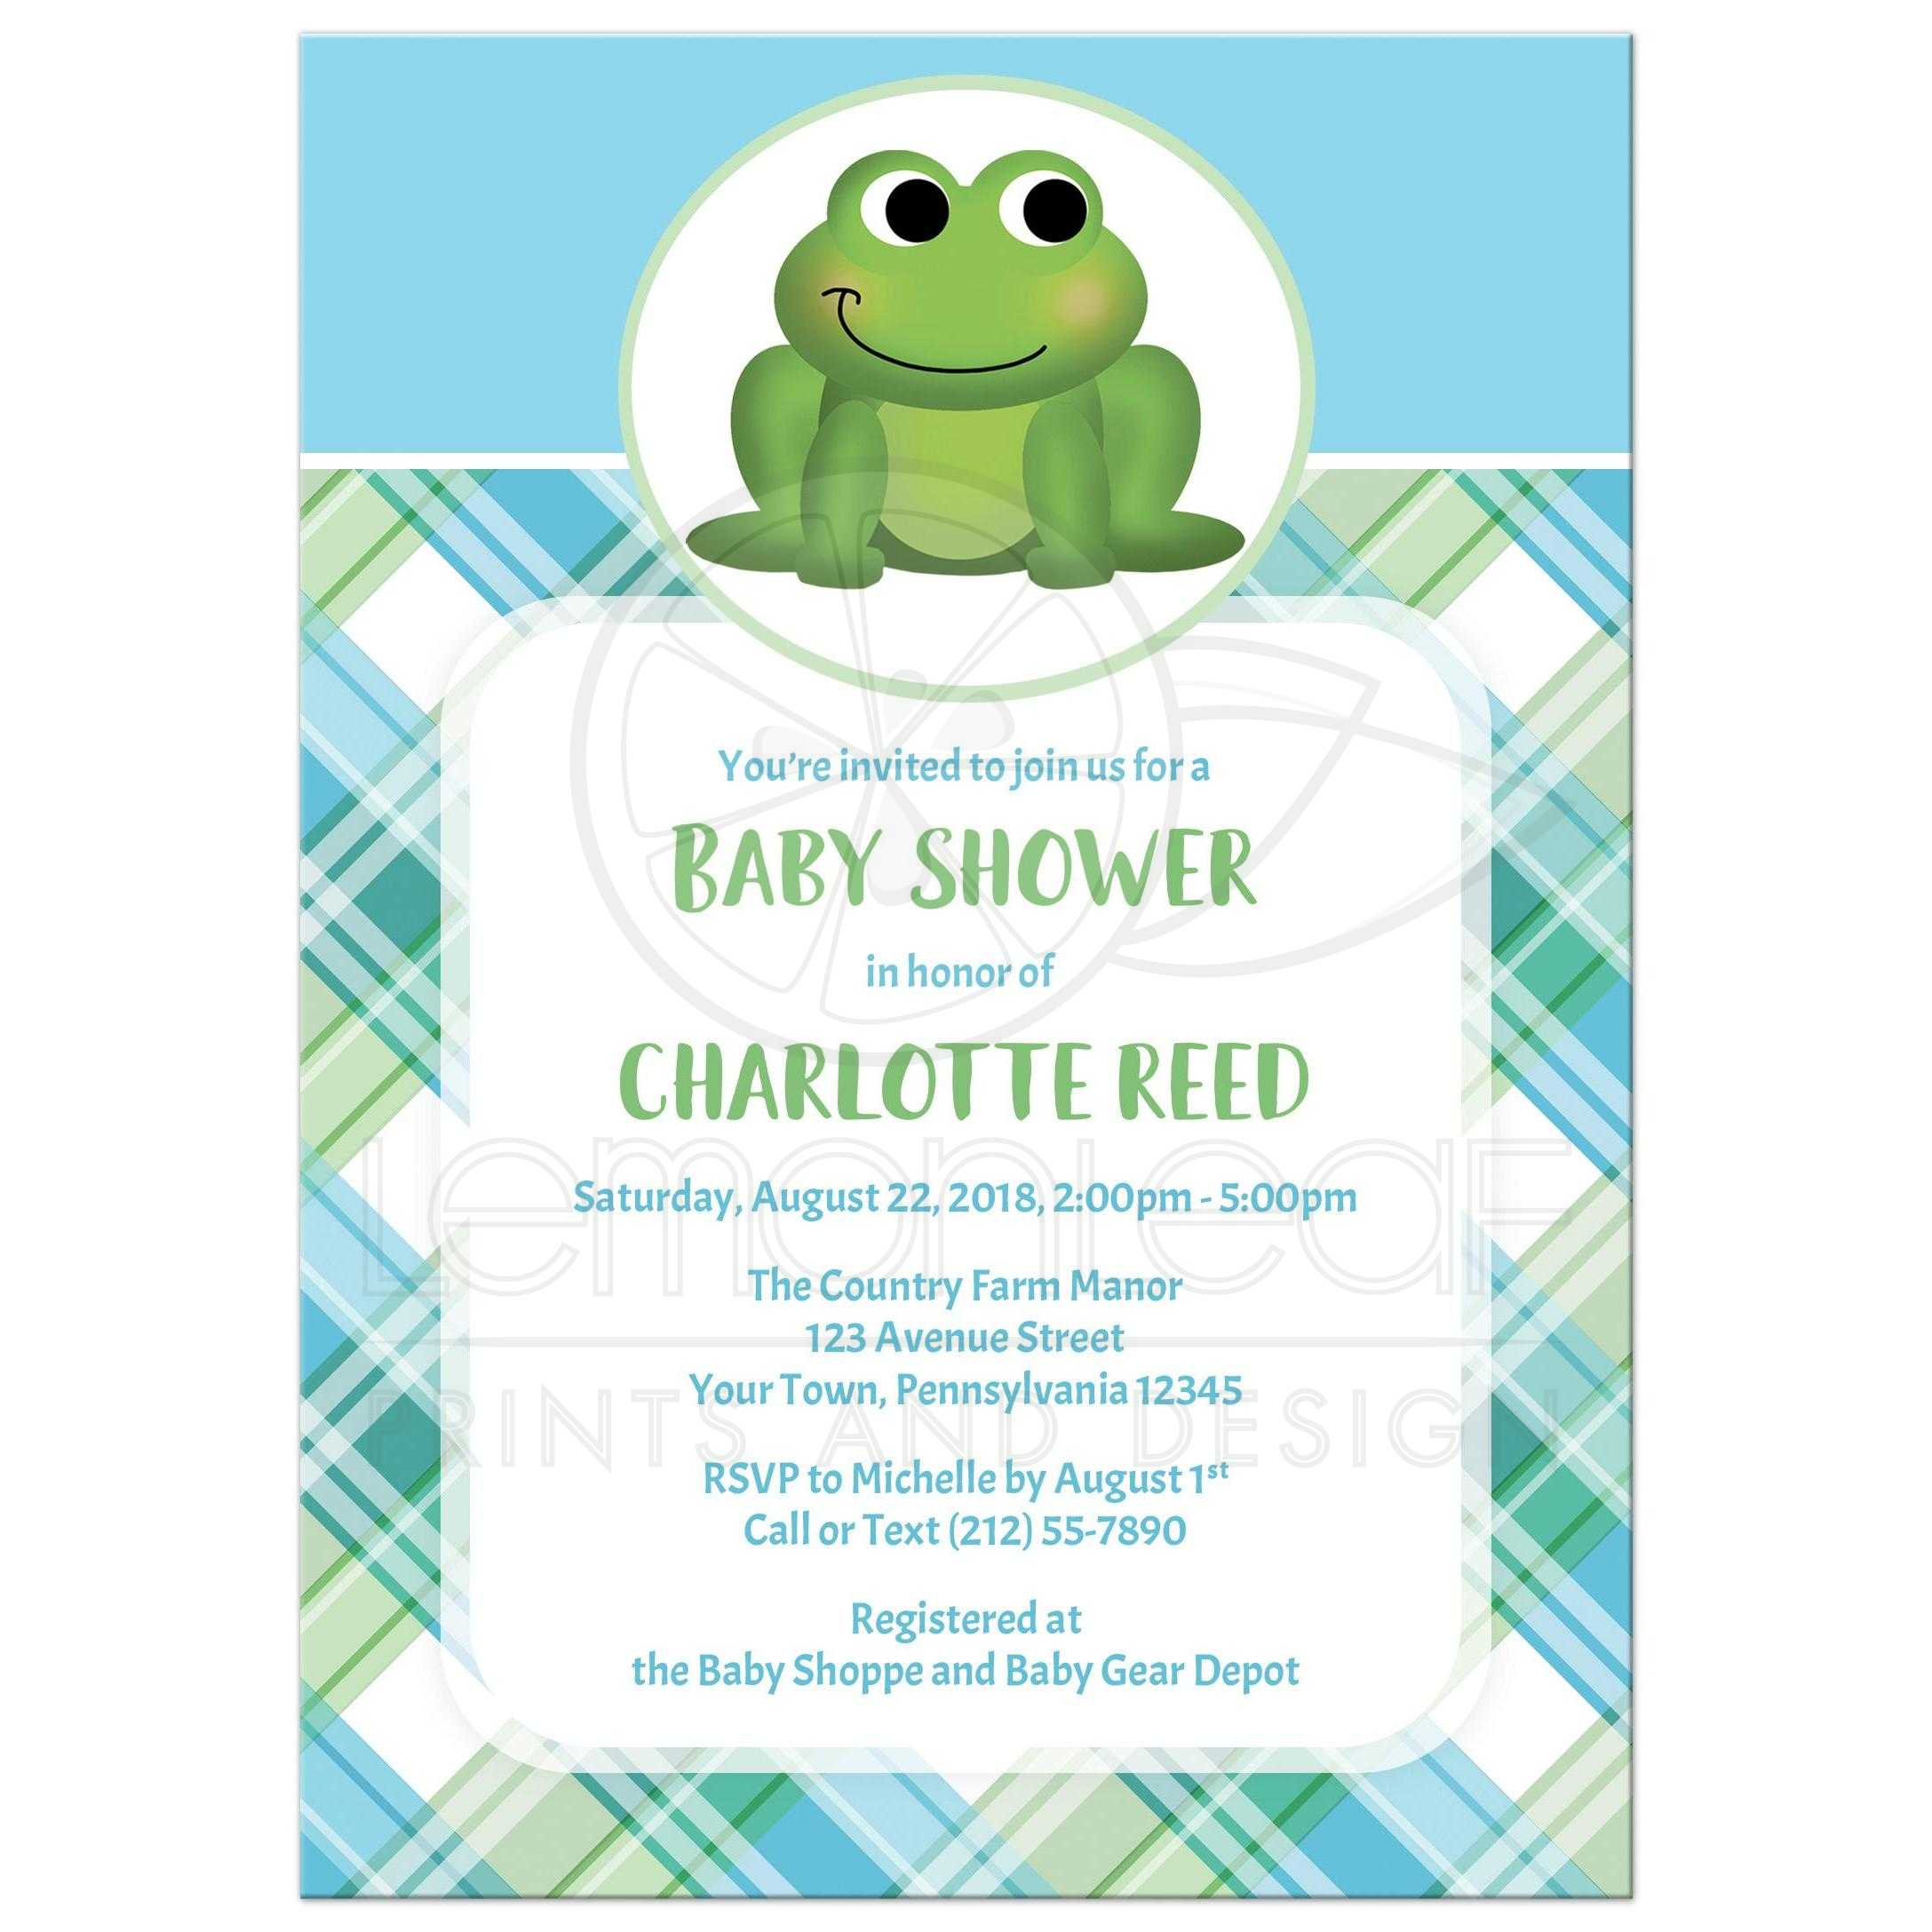 f367e82adc2e 54326 Rectangle Adorable Frog Green and Blue Plaid Baby Shower Invitations.jpg t 1525888471